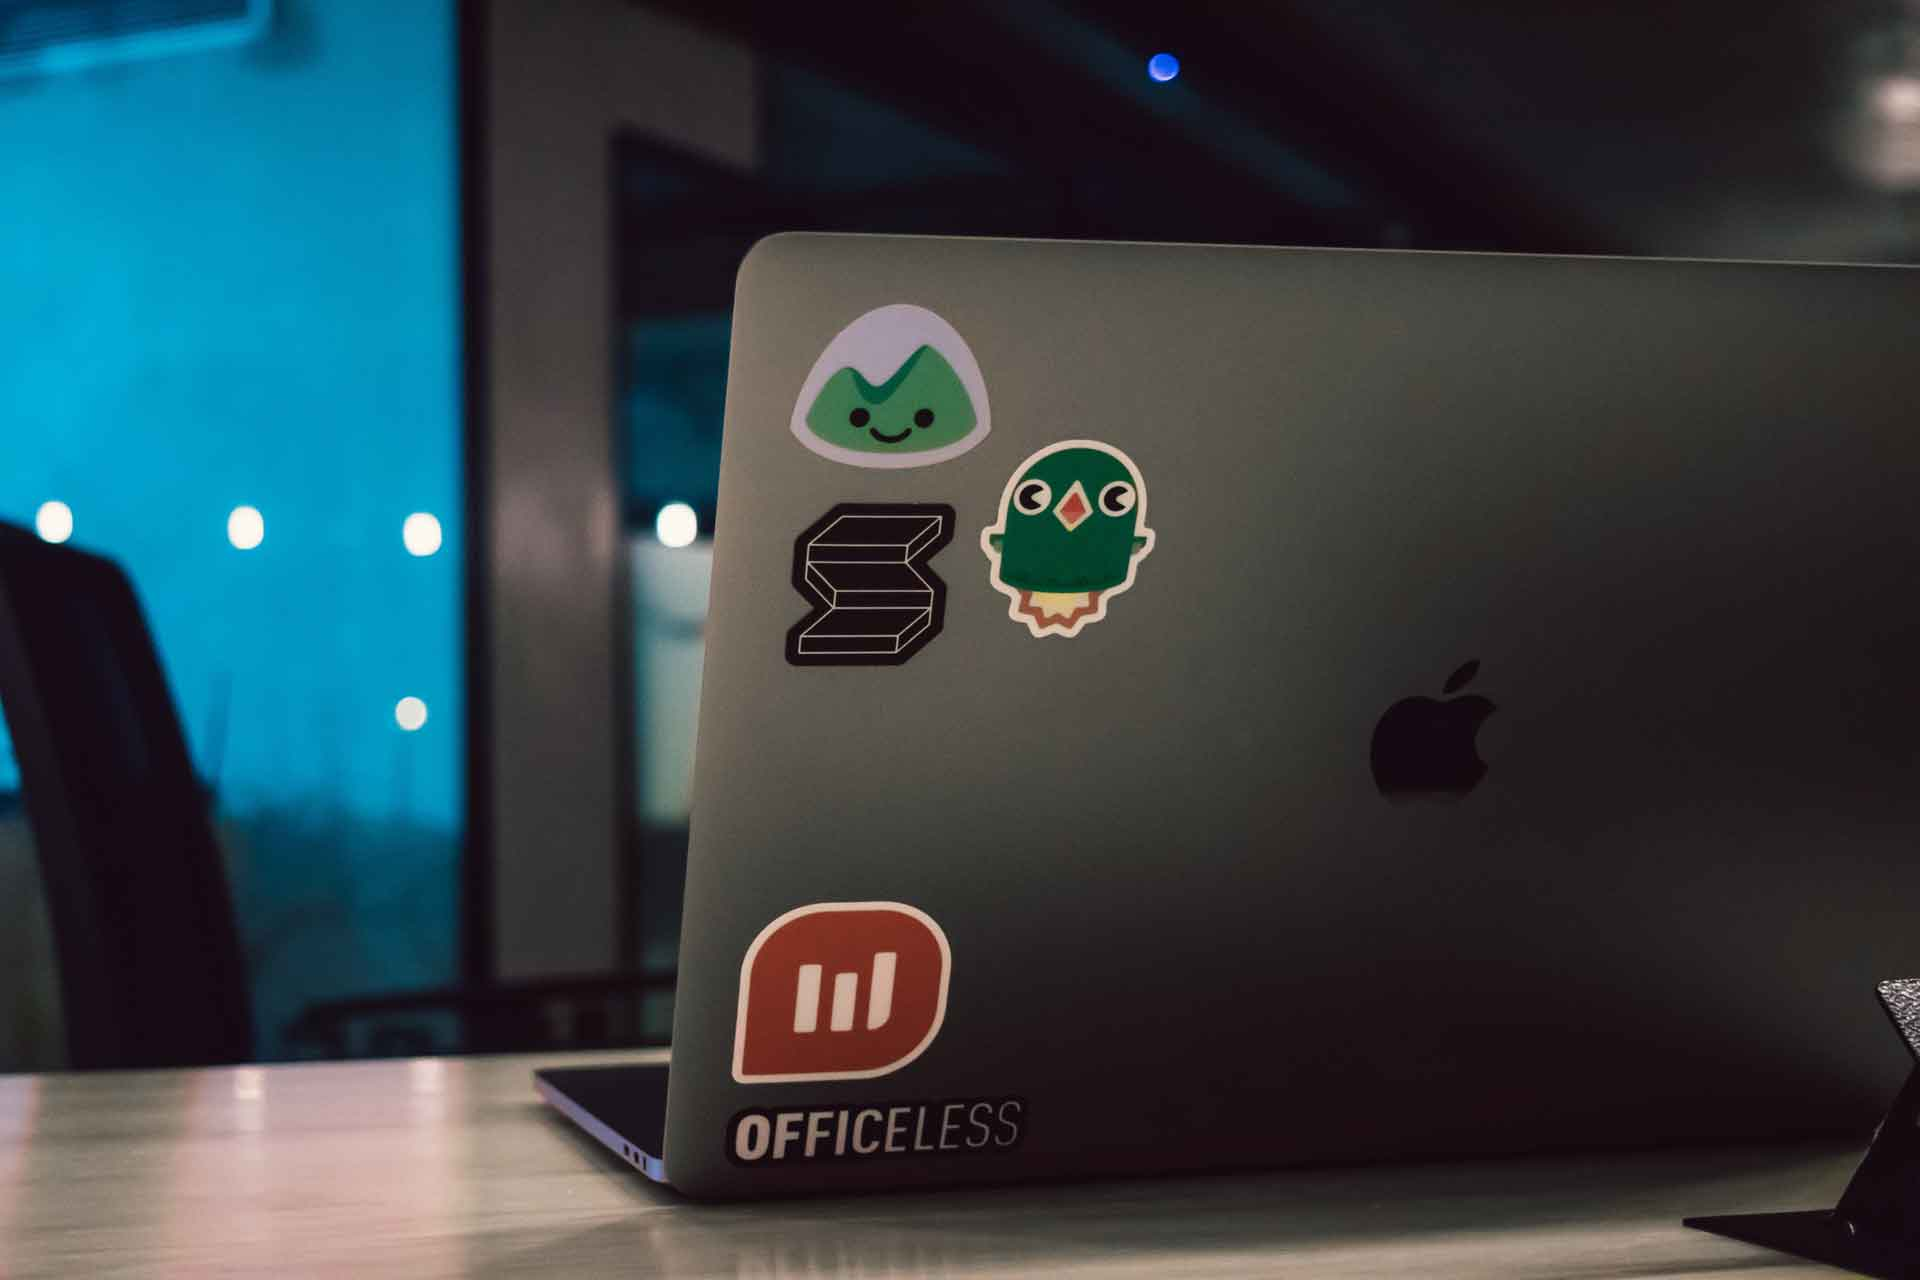 Laptop photo by: Mario Gogh/Unsplash